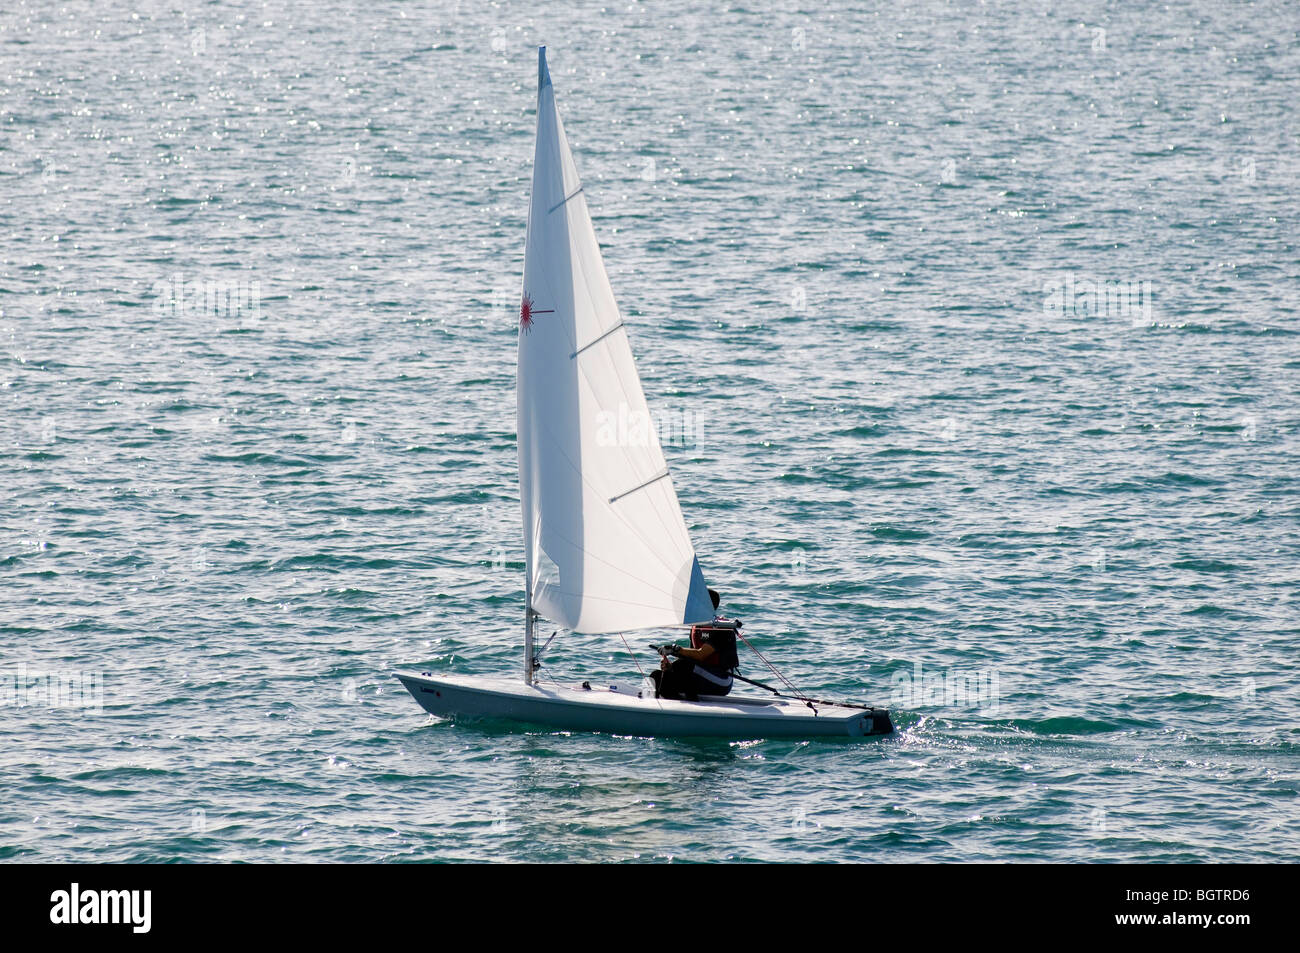 sailing boat boats yacht boating sail sailing sails wind in your sea competition one man dingy  Dingyi's - Stock Image